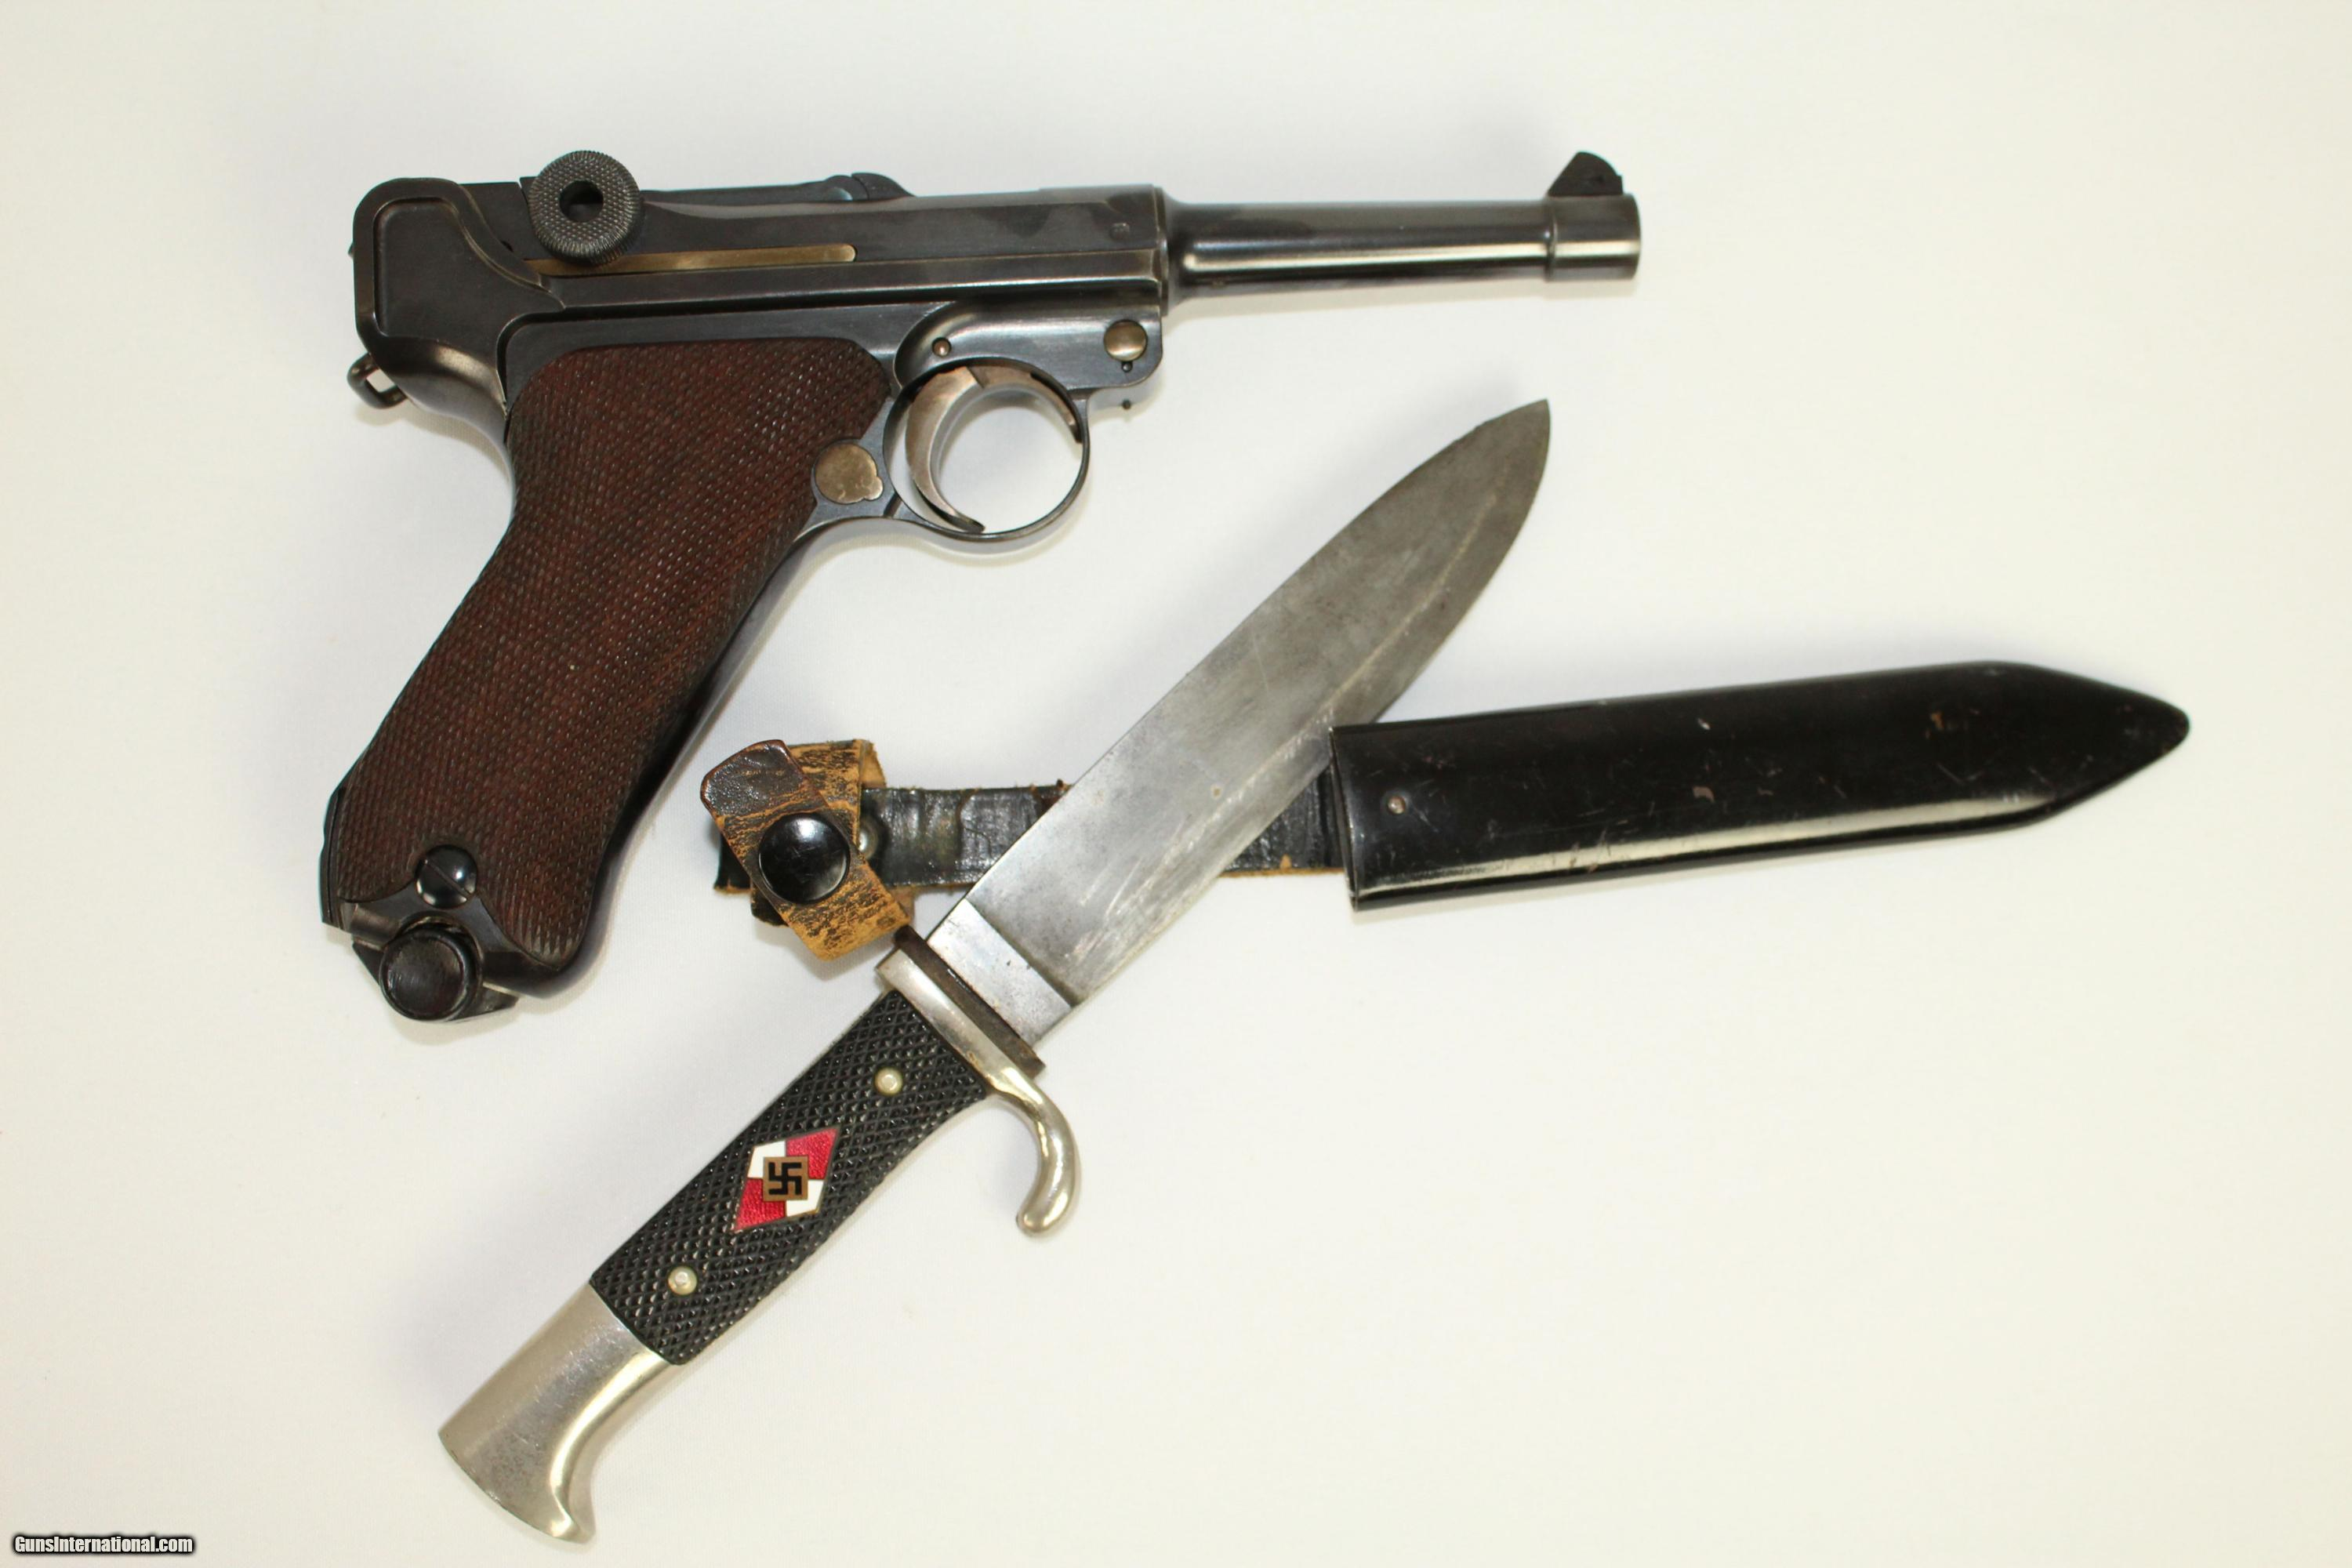 ICONIC Pre-WWII Nazi Sneak Luger Pistol with Hitler Youth Blade